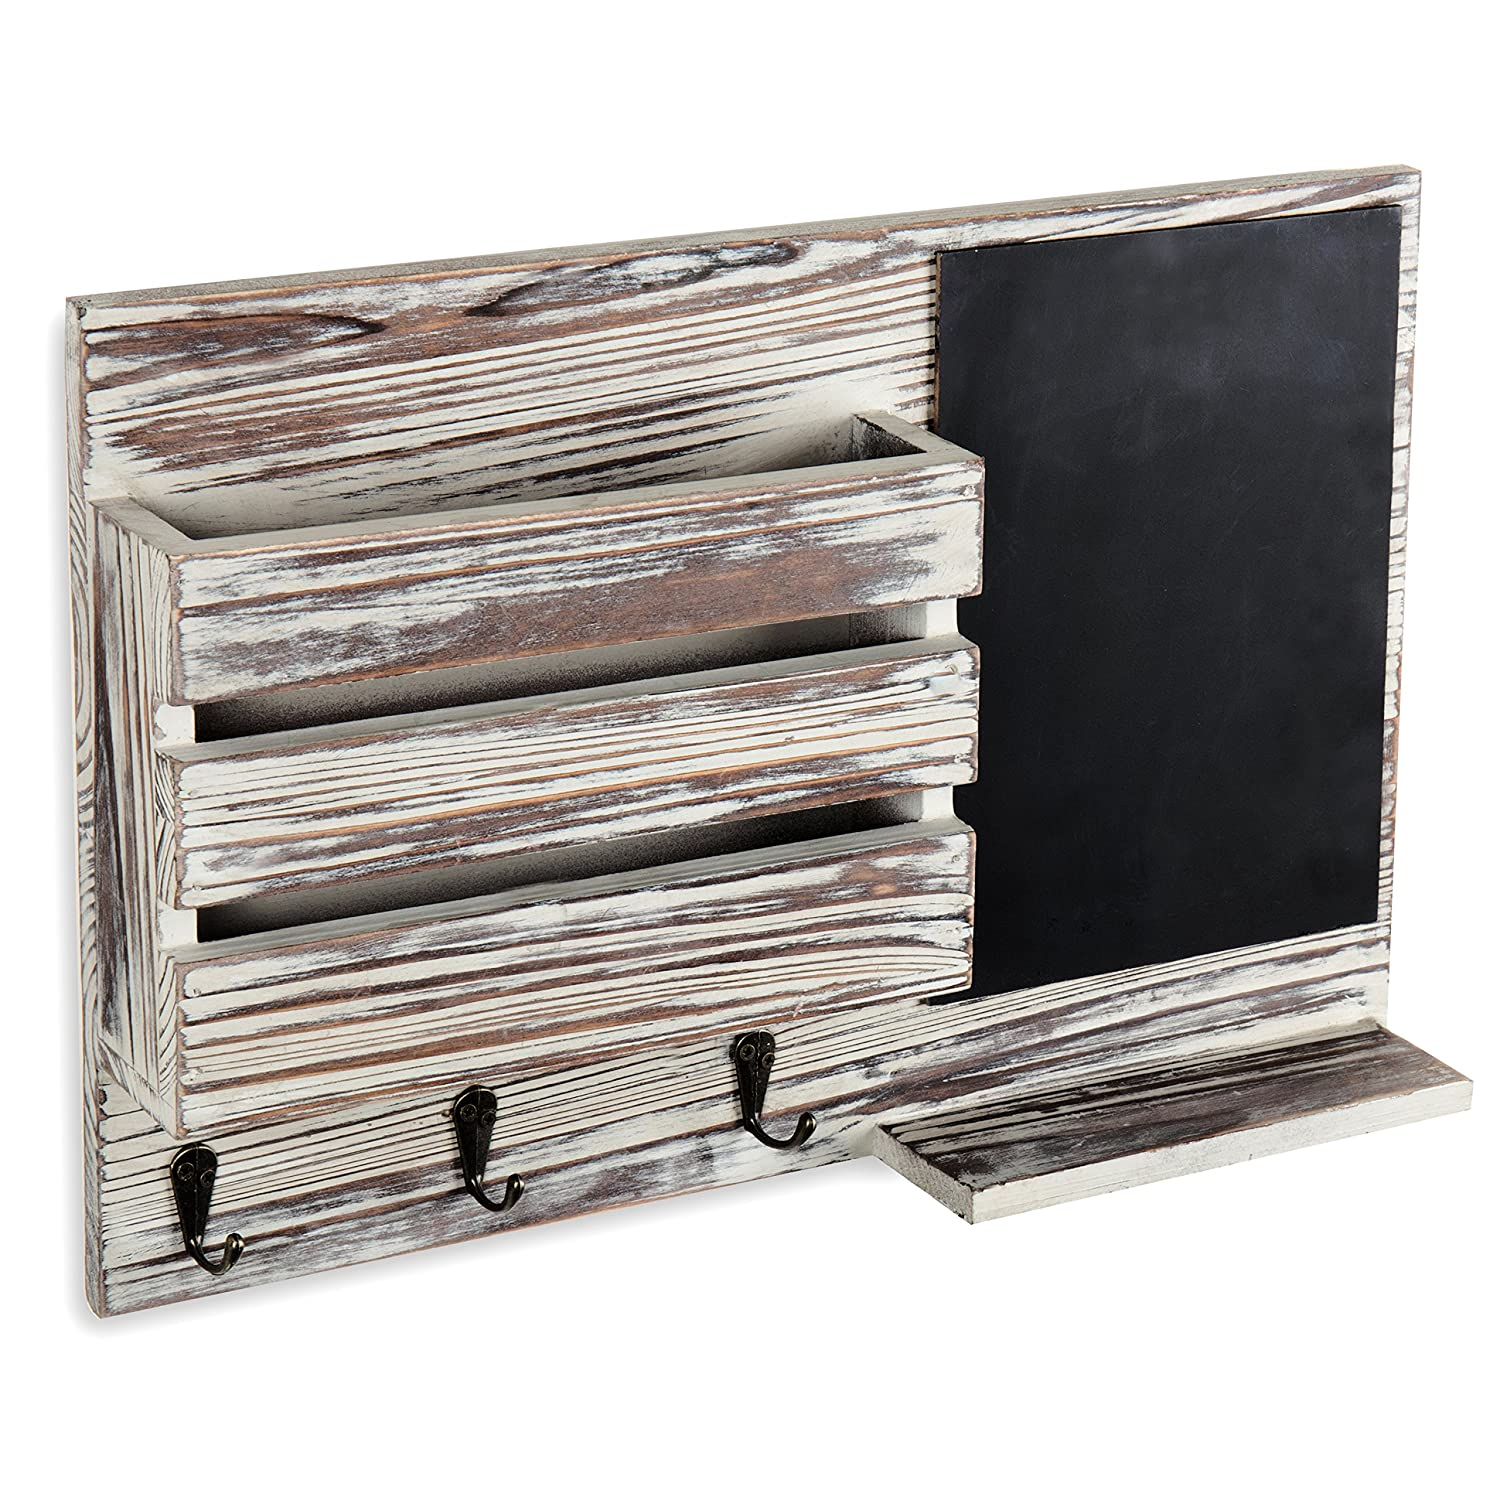 MyGift Torched Wood Wall-Mounted Mail Organizer with Chalkboard /& 3 Key Hooks